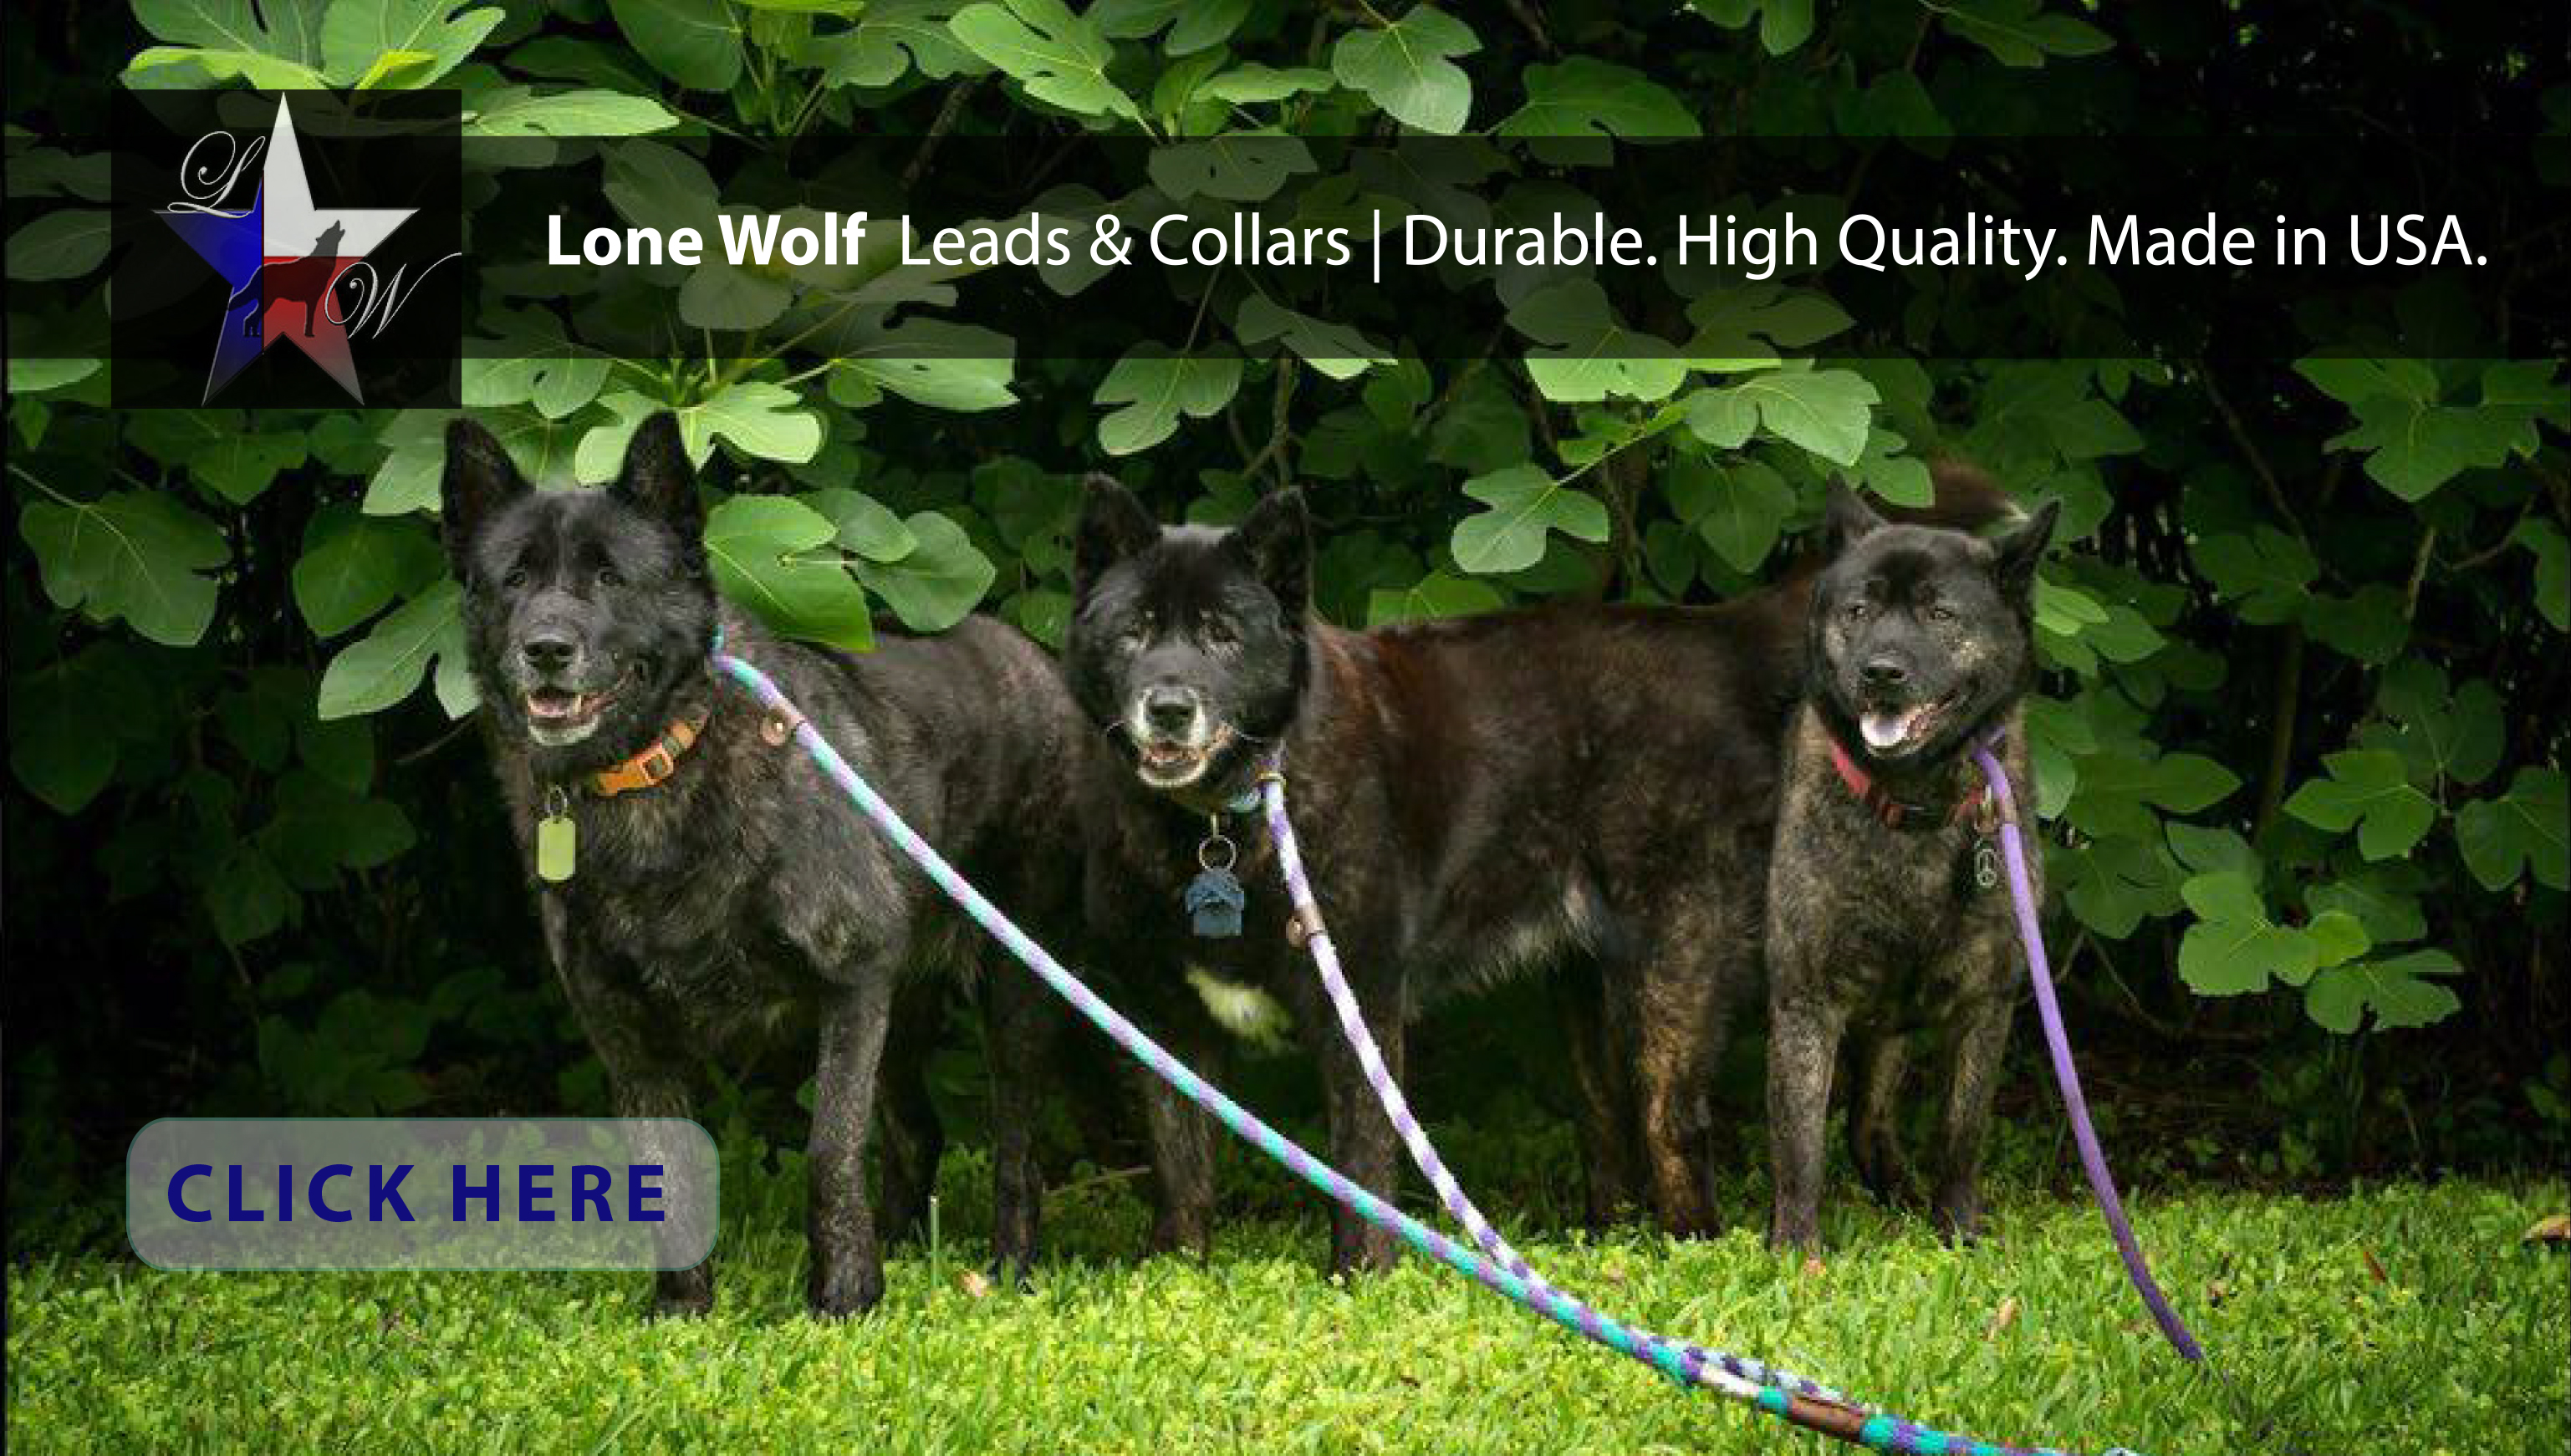 New at JMI Pet Supply - Lone Wolf Pet Products